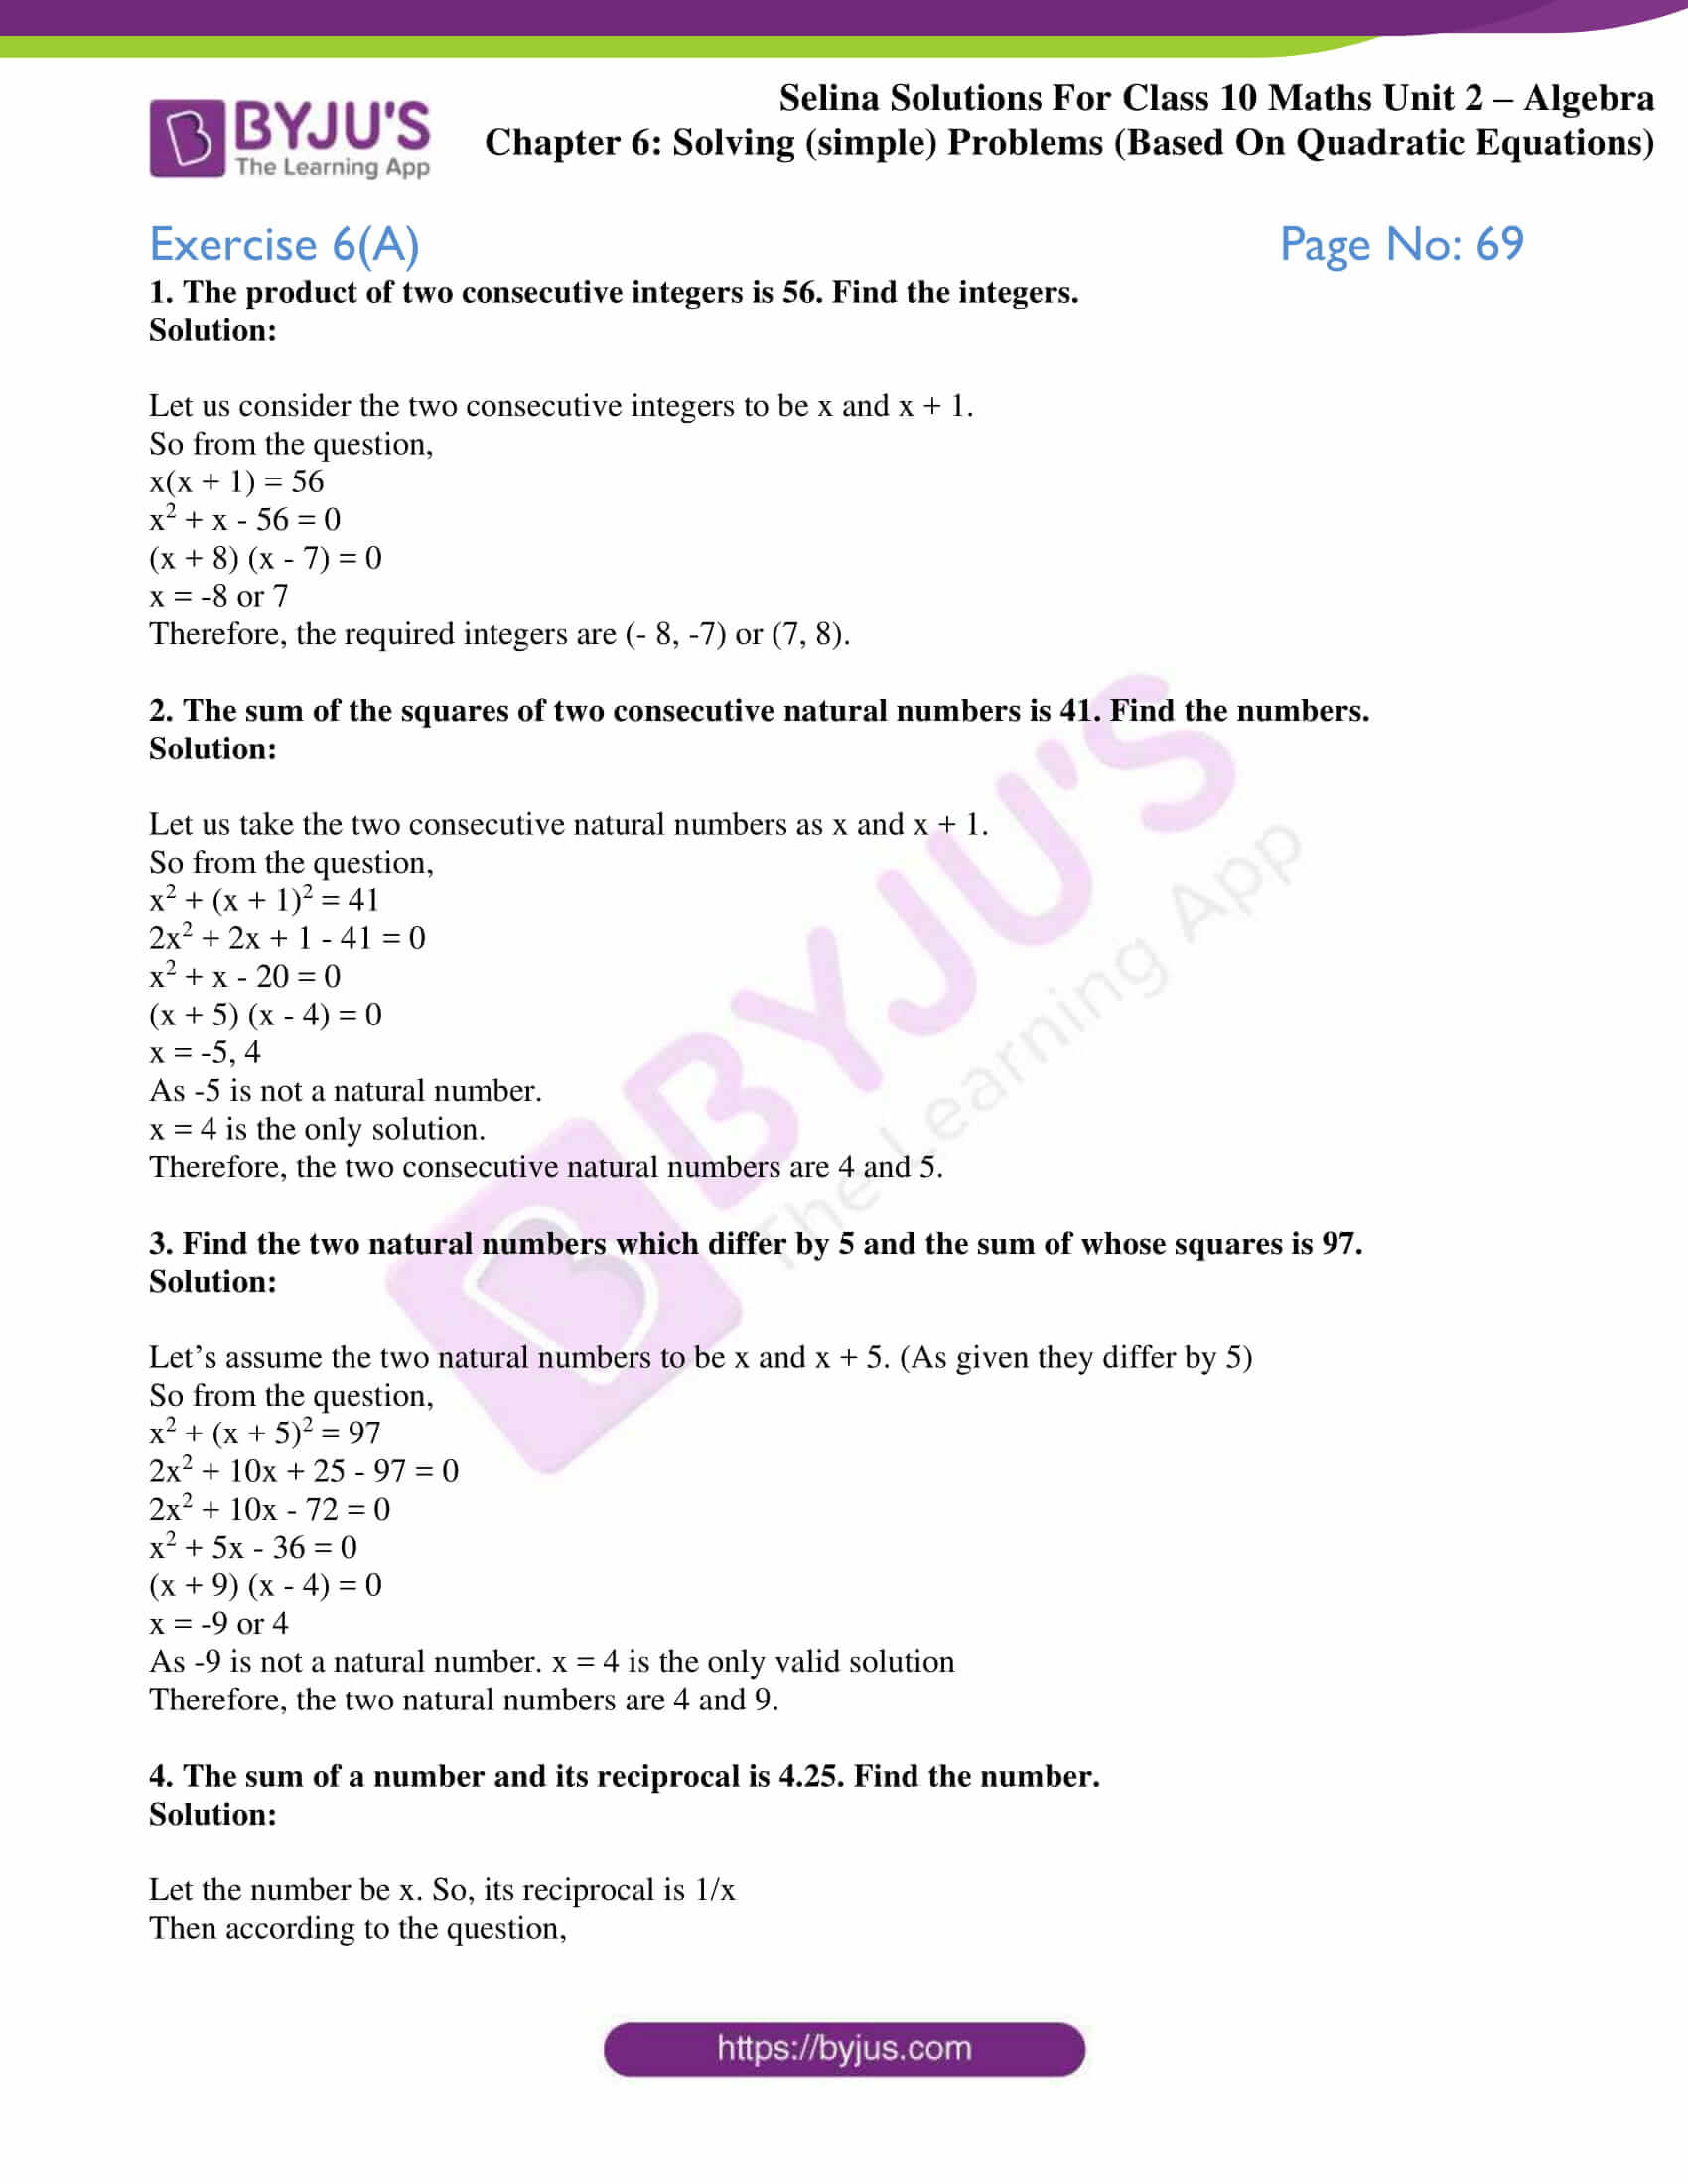 selina solution concise maths class 10 chapter 6a